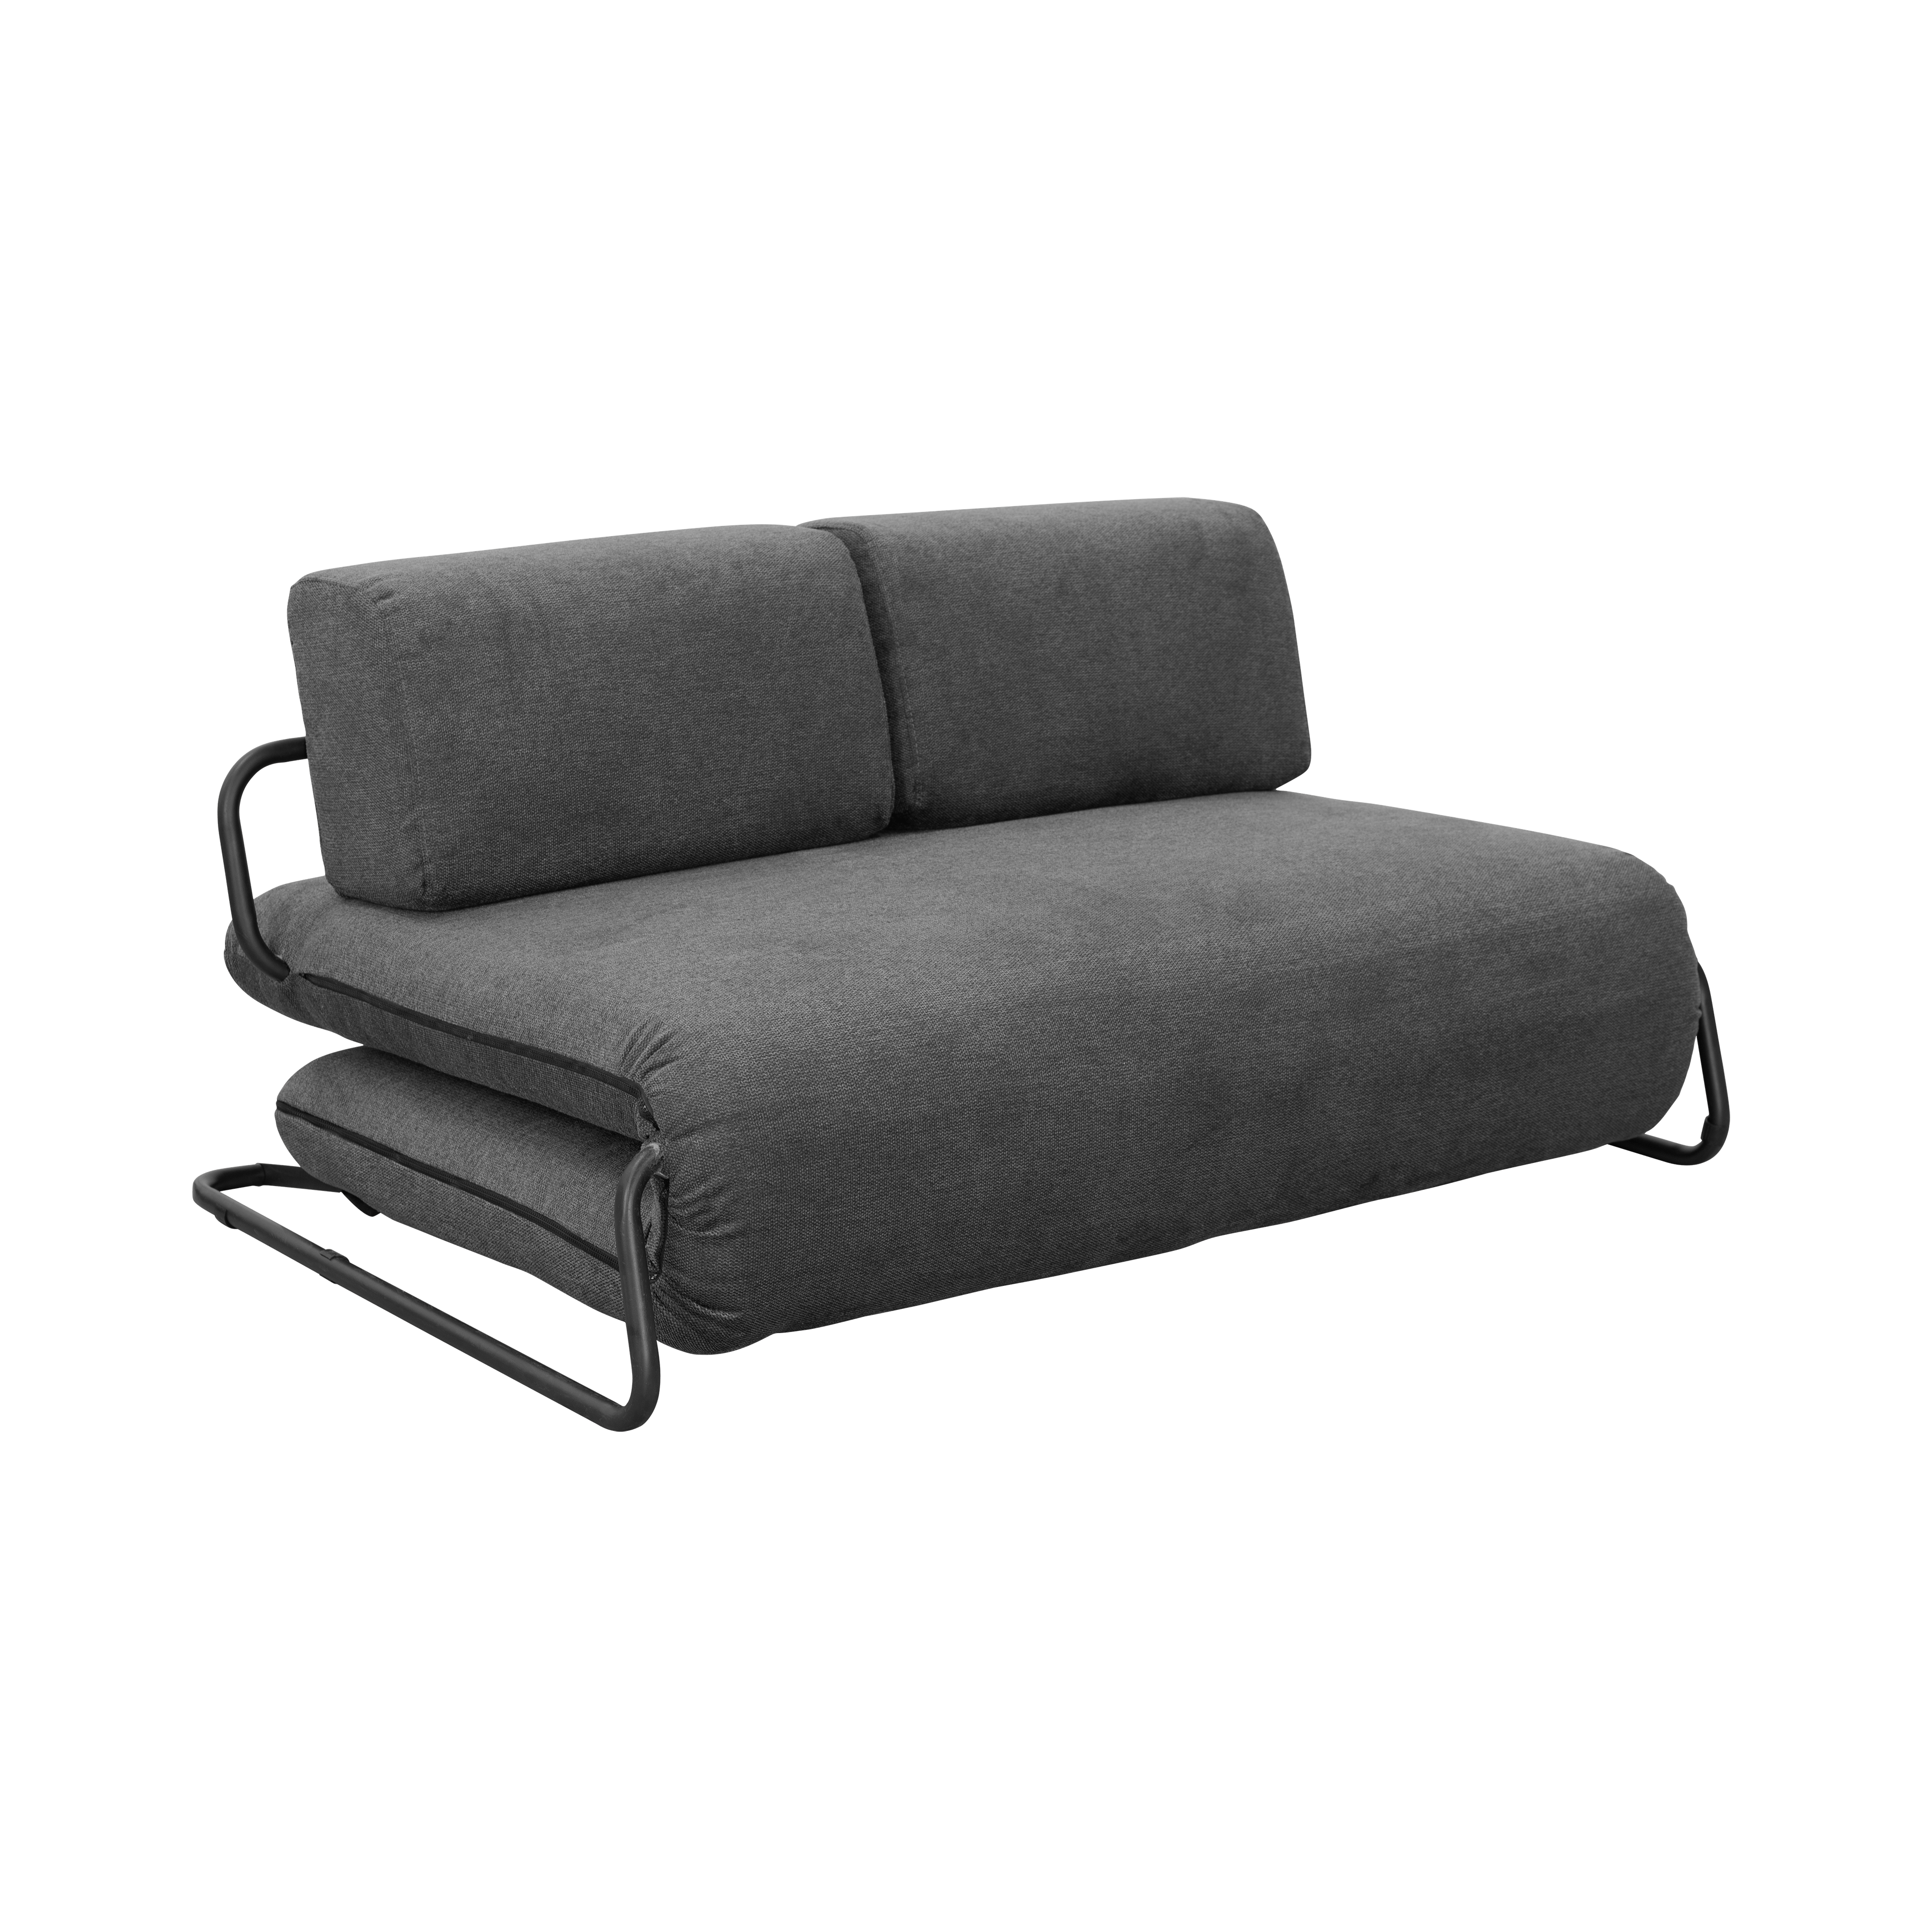 single size sofa bed singapore living room with dark green buy versatile beds online in hipvan leyton charcoal grey image 1